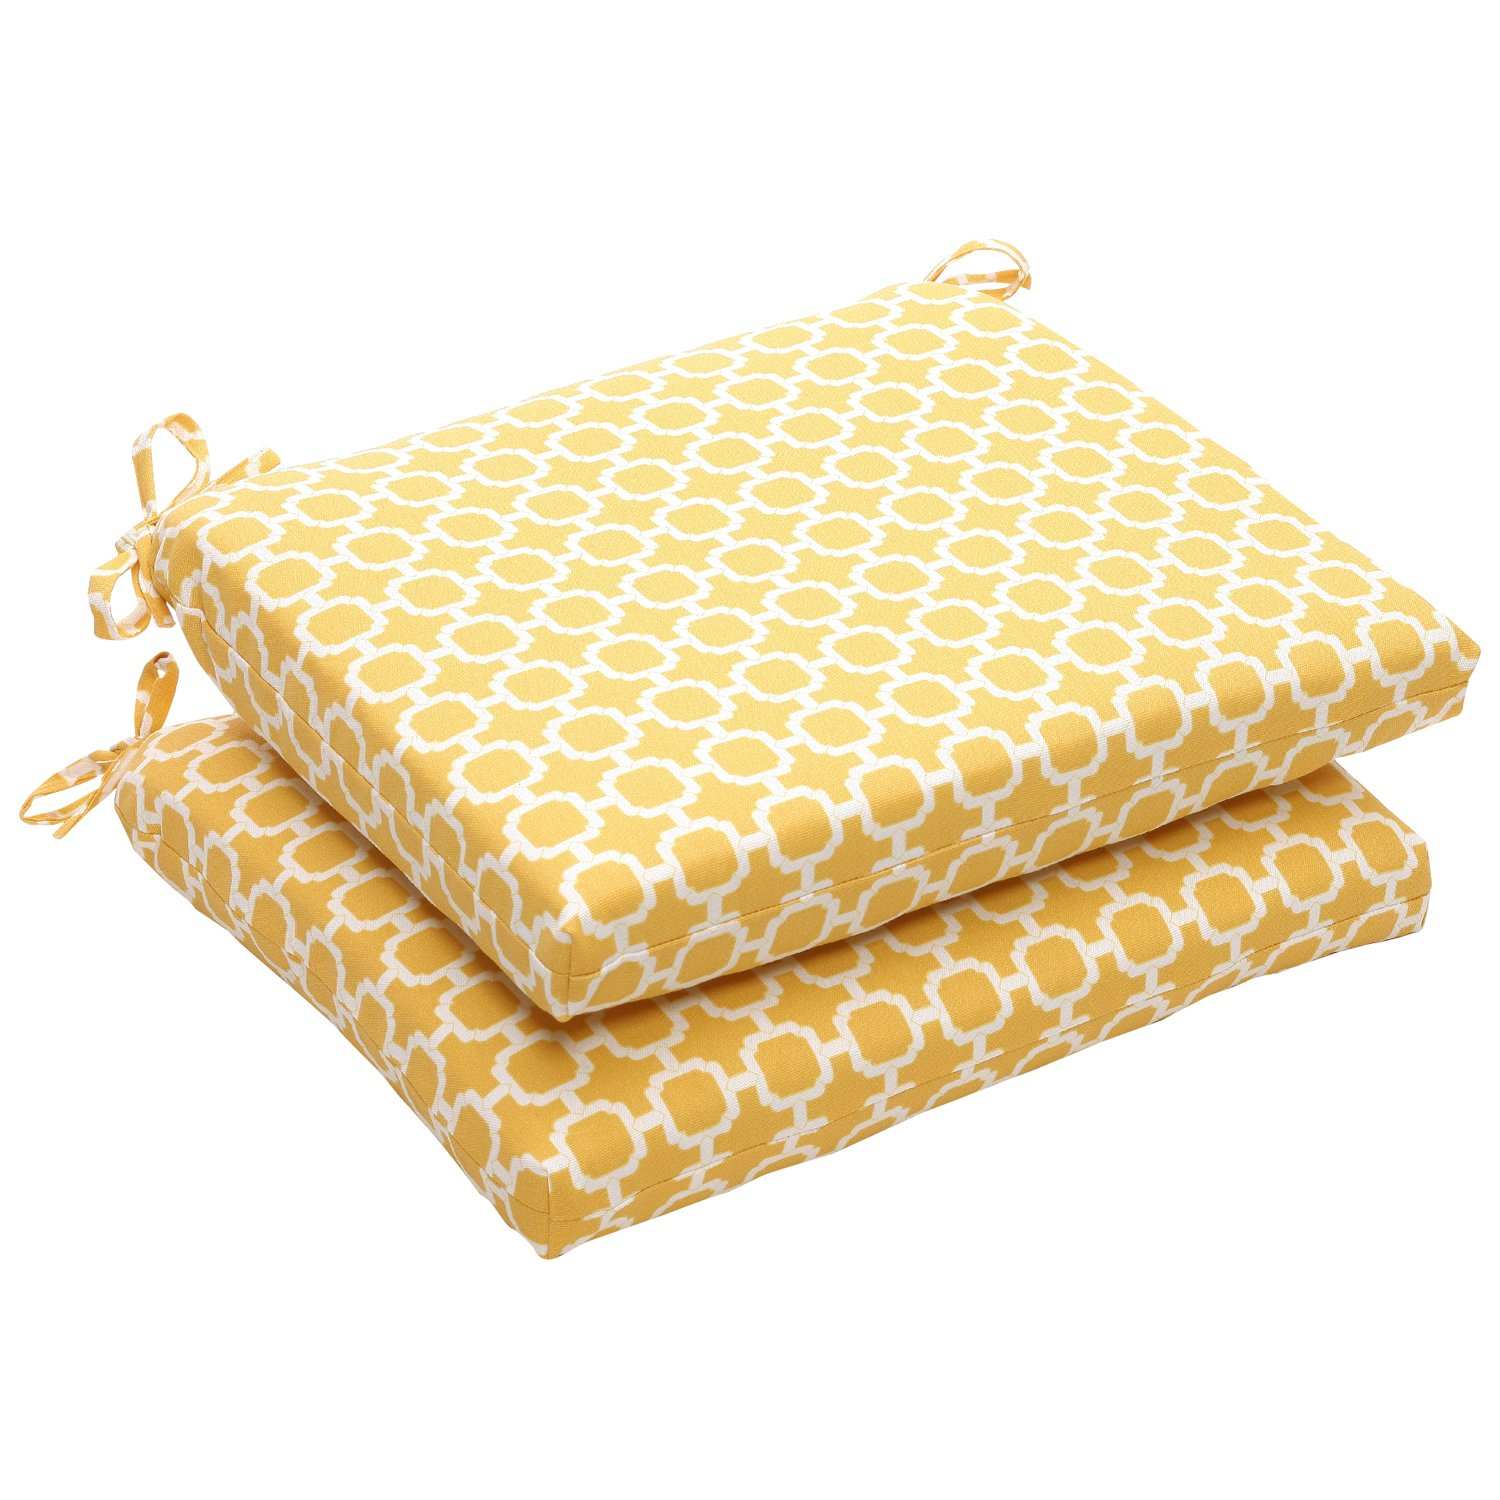 Pillow Perfect Indoor Outdoor Yellow White Geometric Square Seat Cushion, 2-Pack